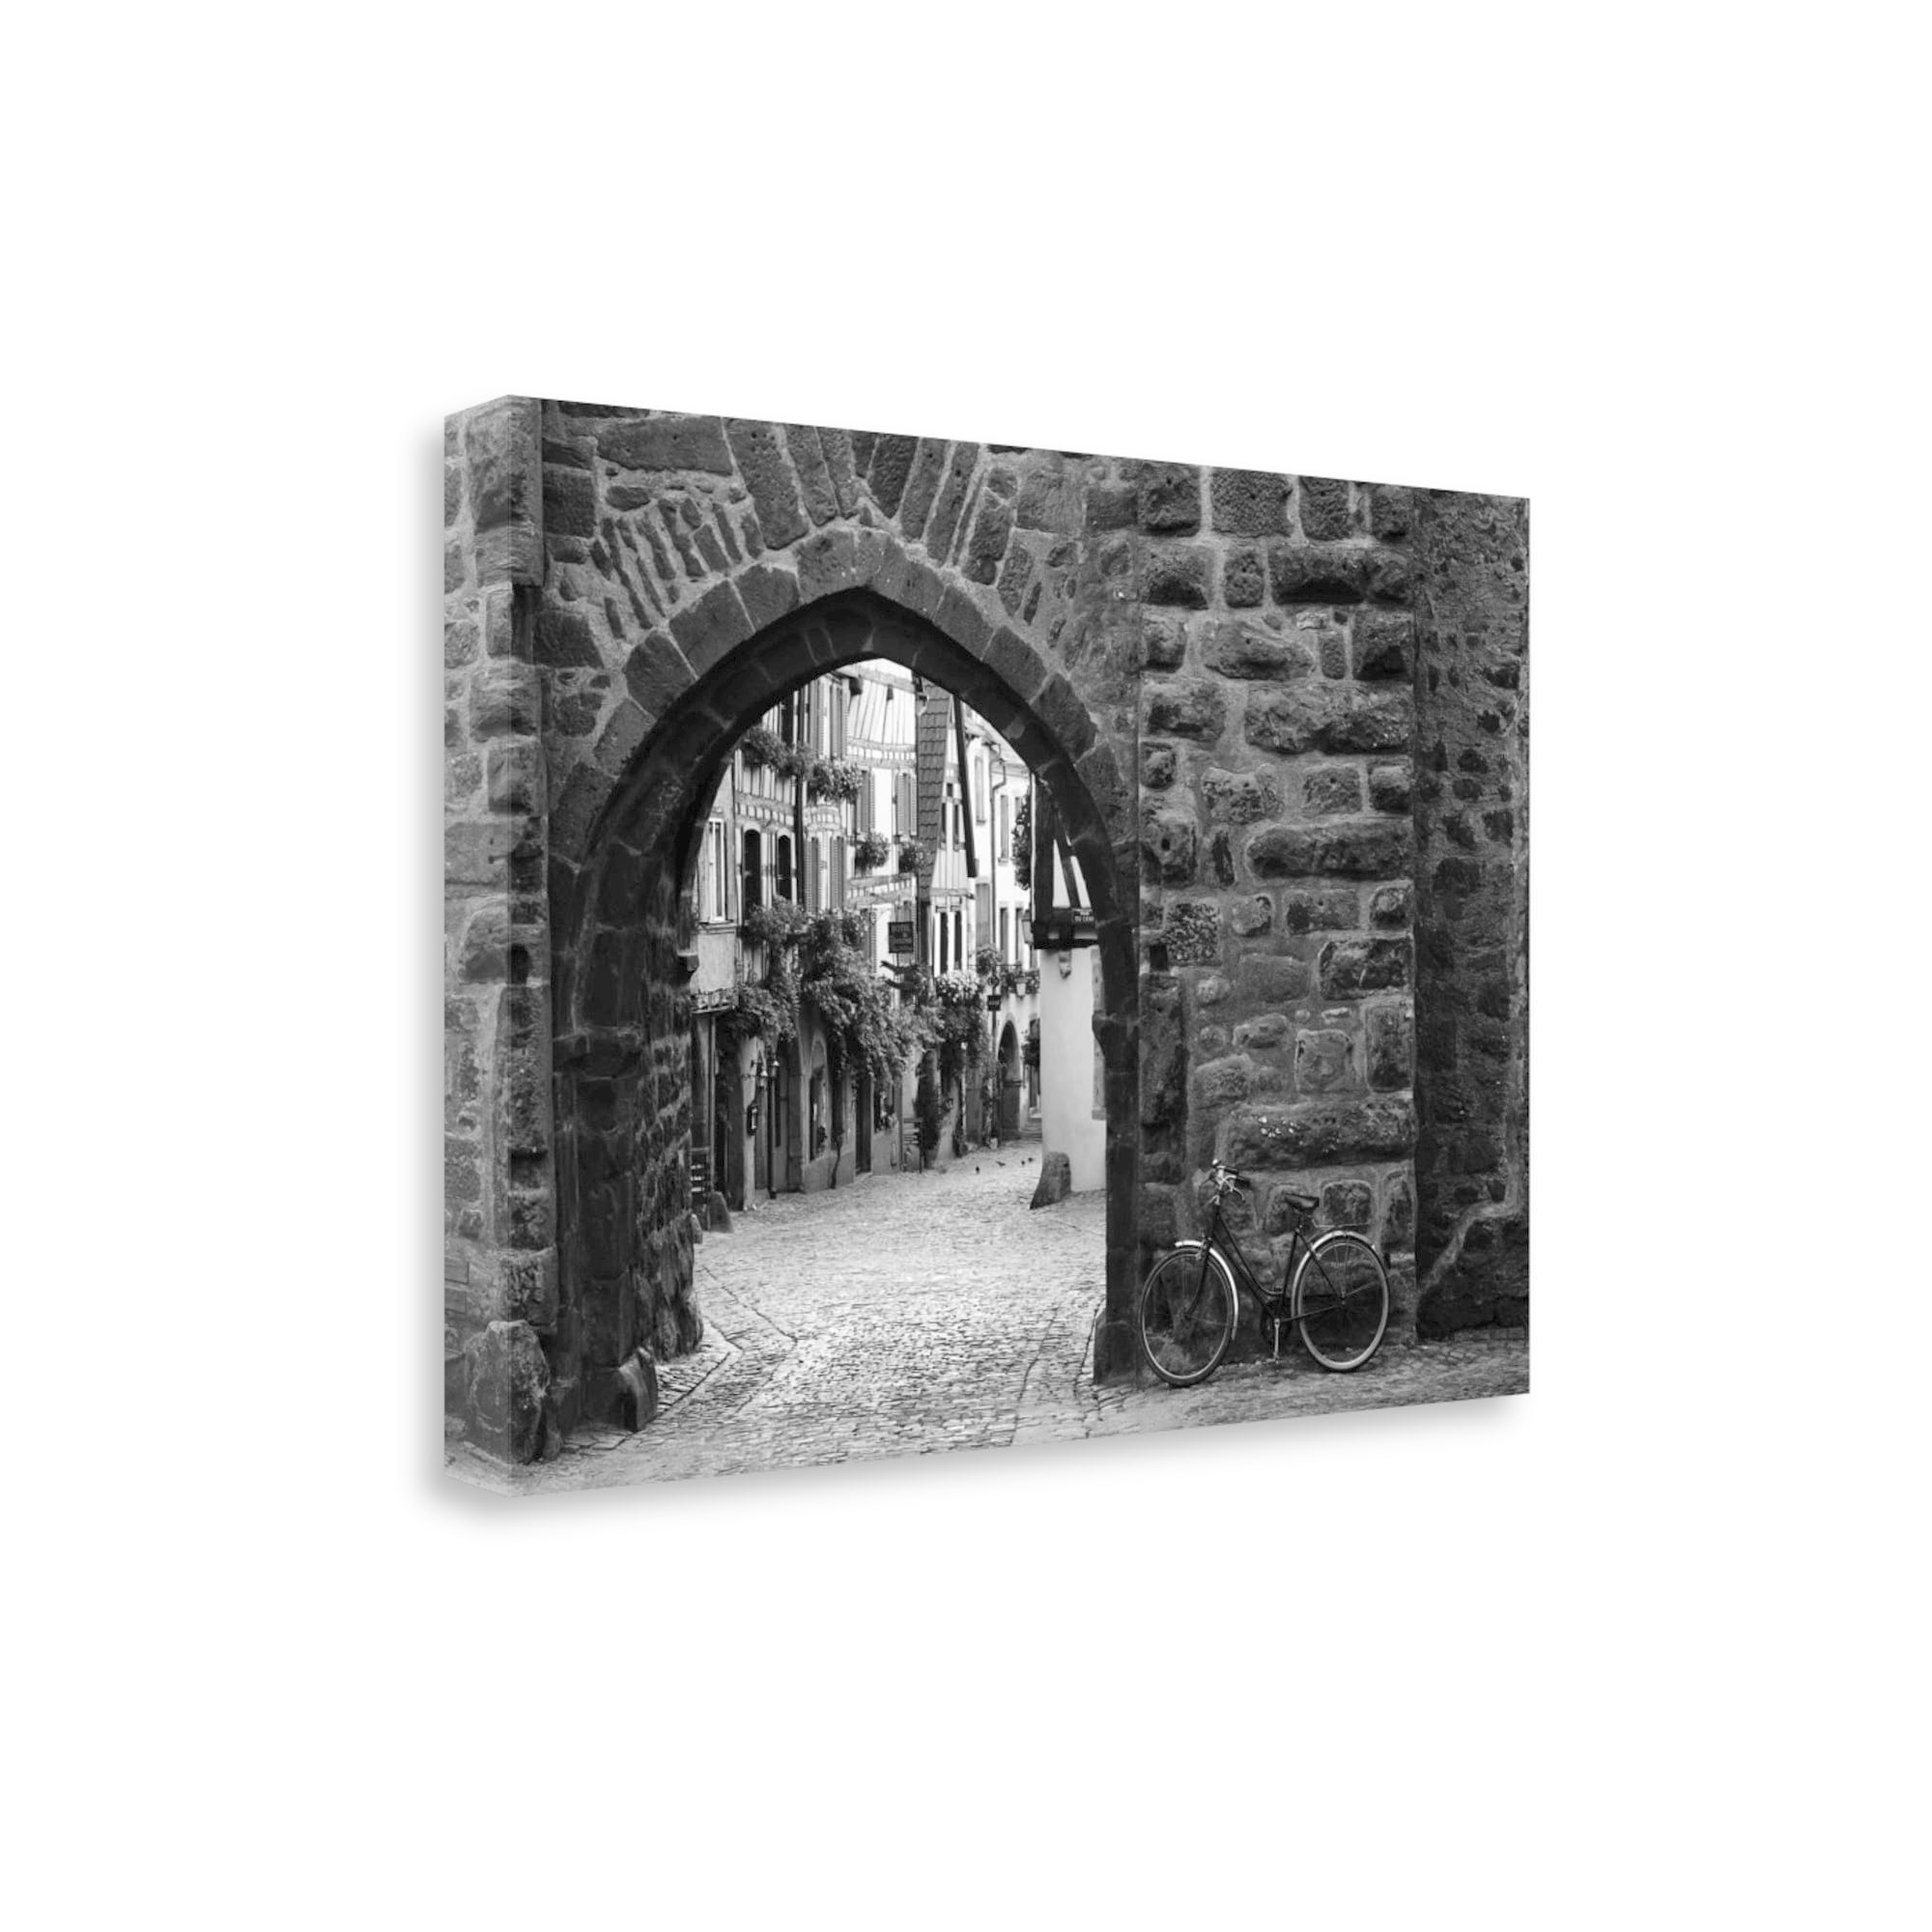 Bicycle of riquewihr by monte nagler gallery wrap canvas